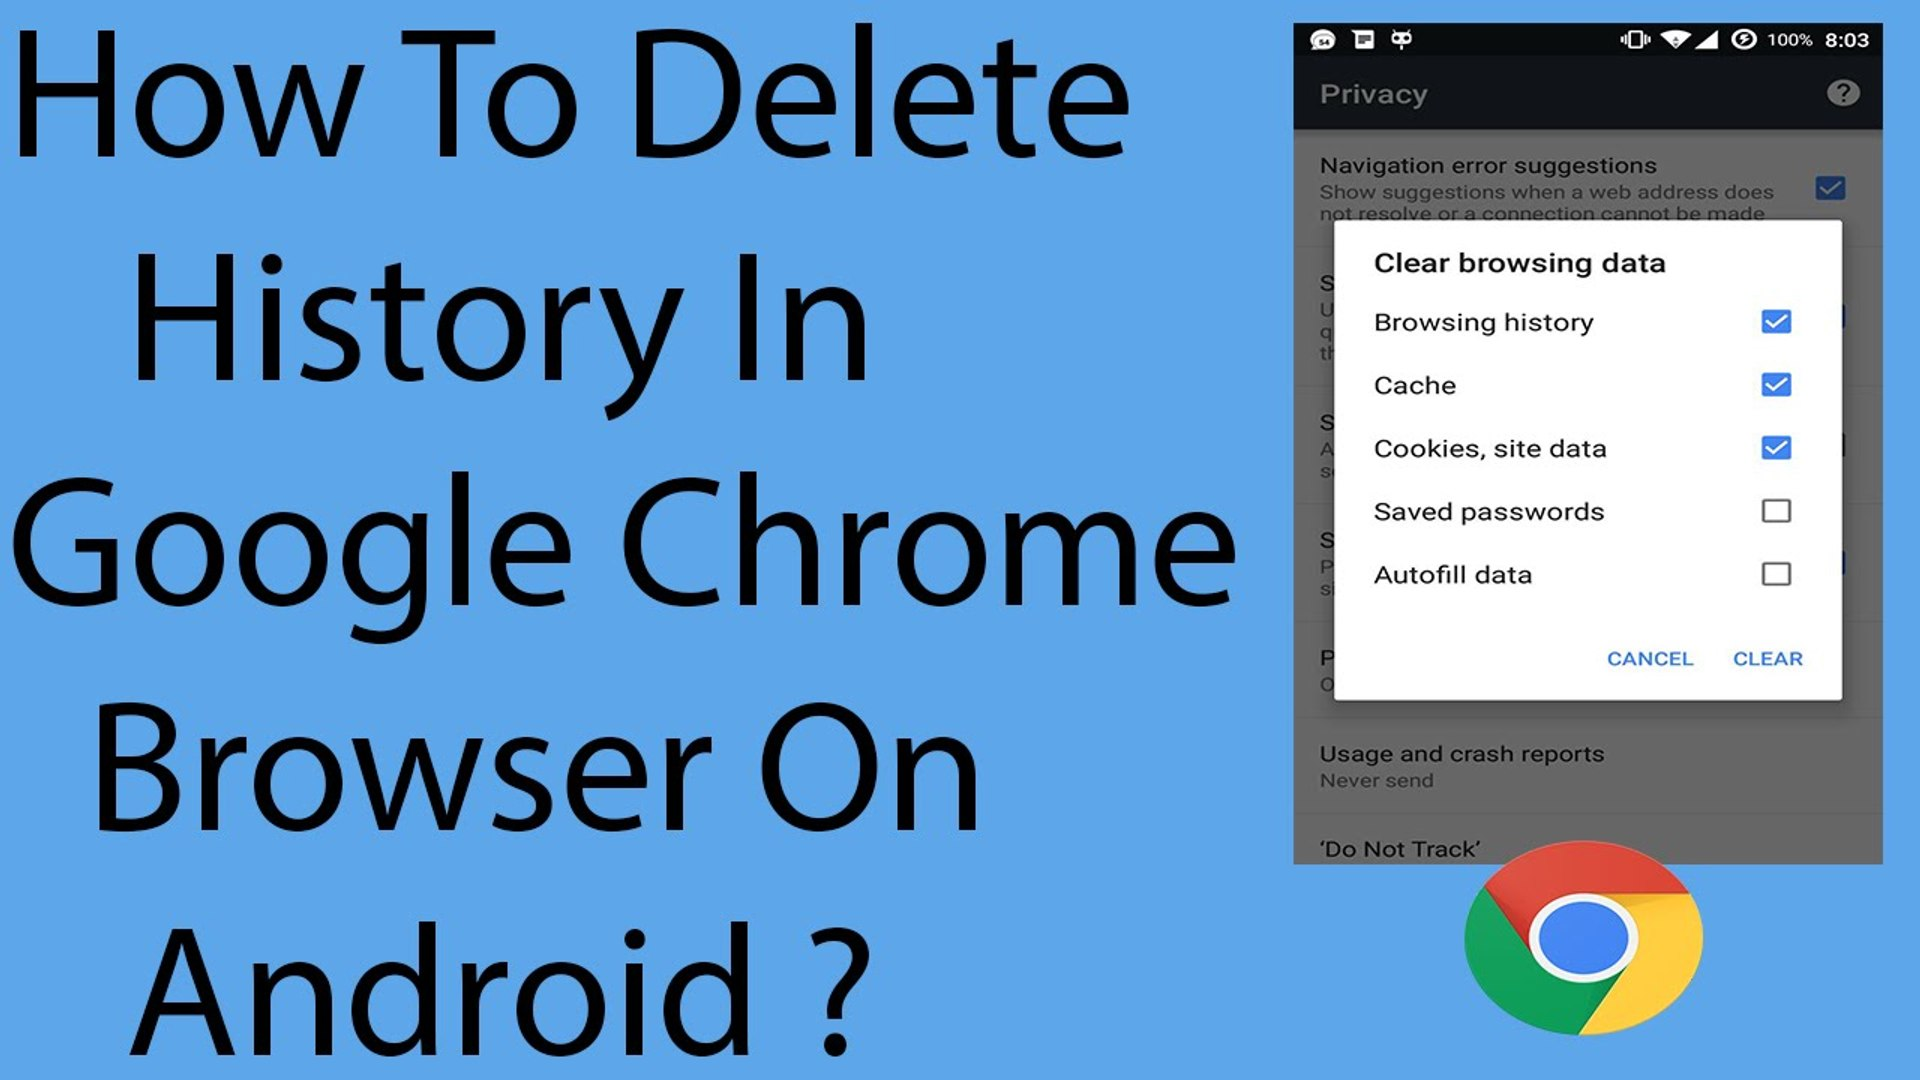 How To Delete History In Google Chrome Browser On Android ?